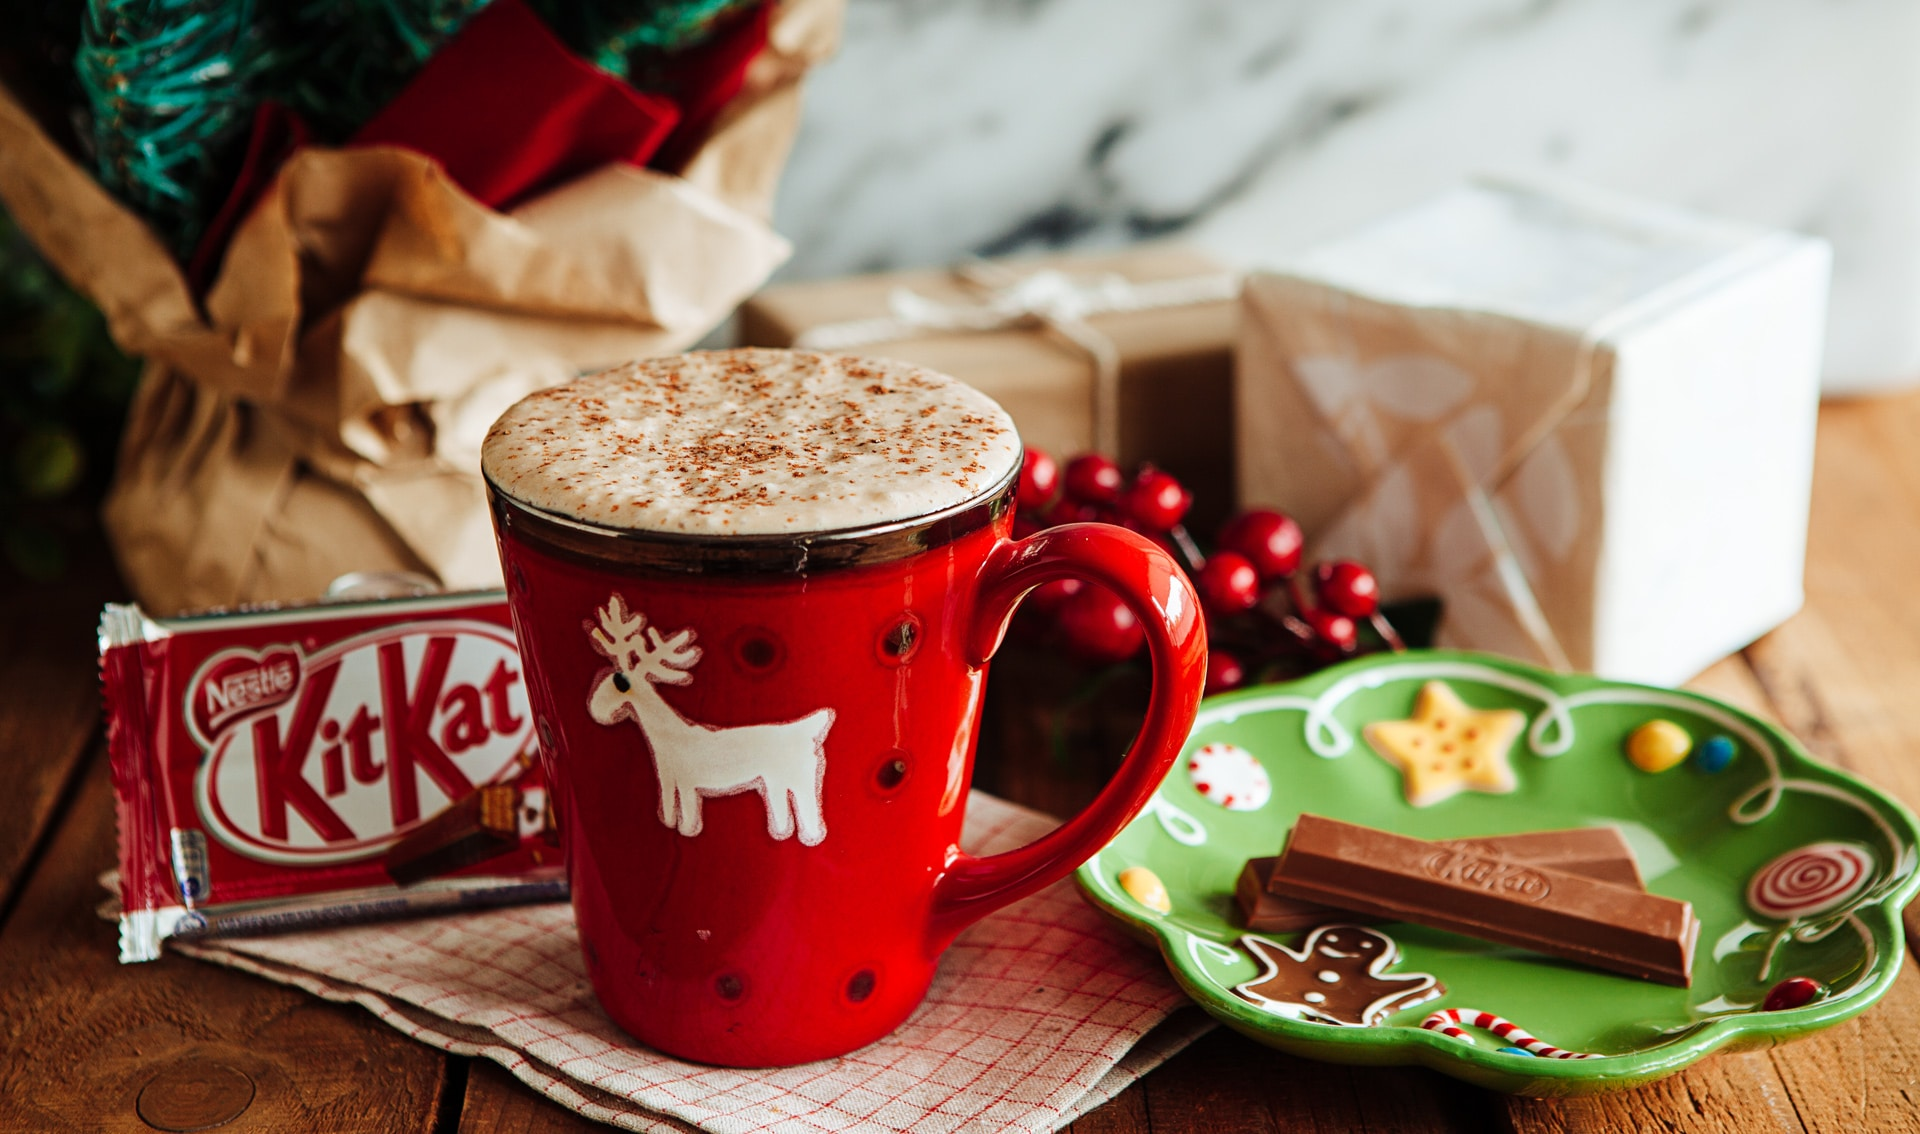 kitkat-eggnog-featured-image